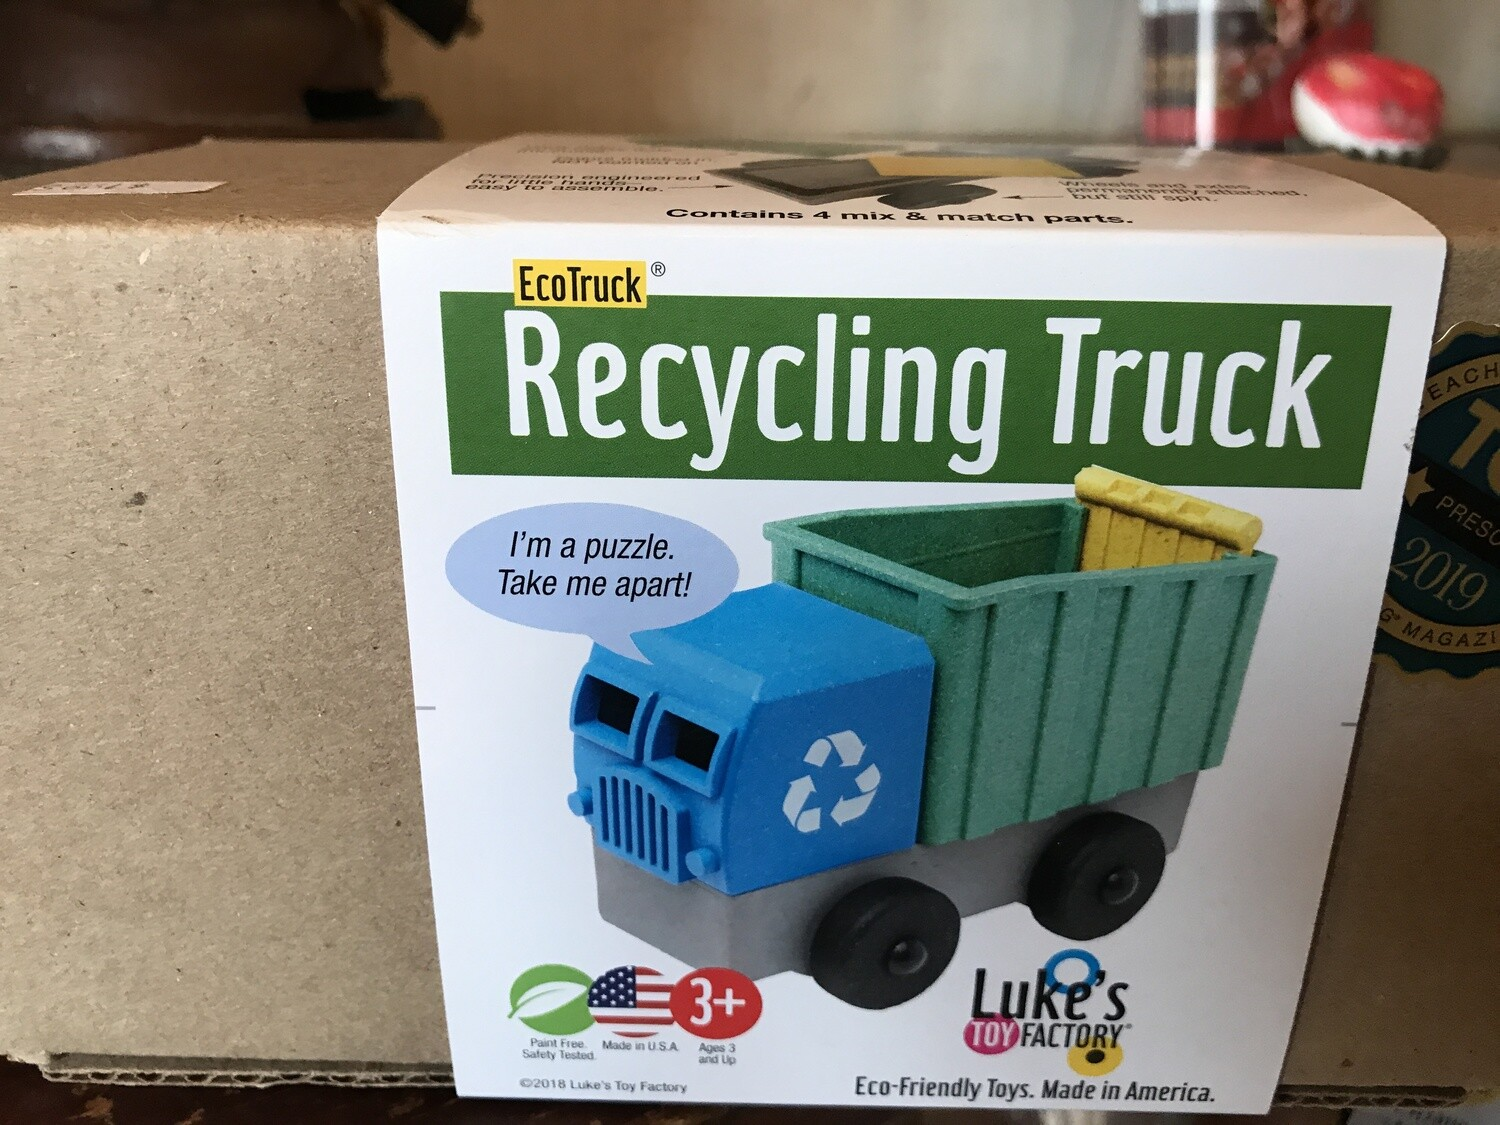 Luke's Ecotruck Recycling Truck